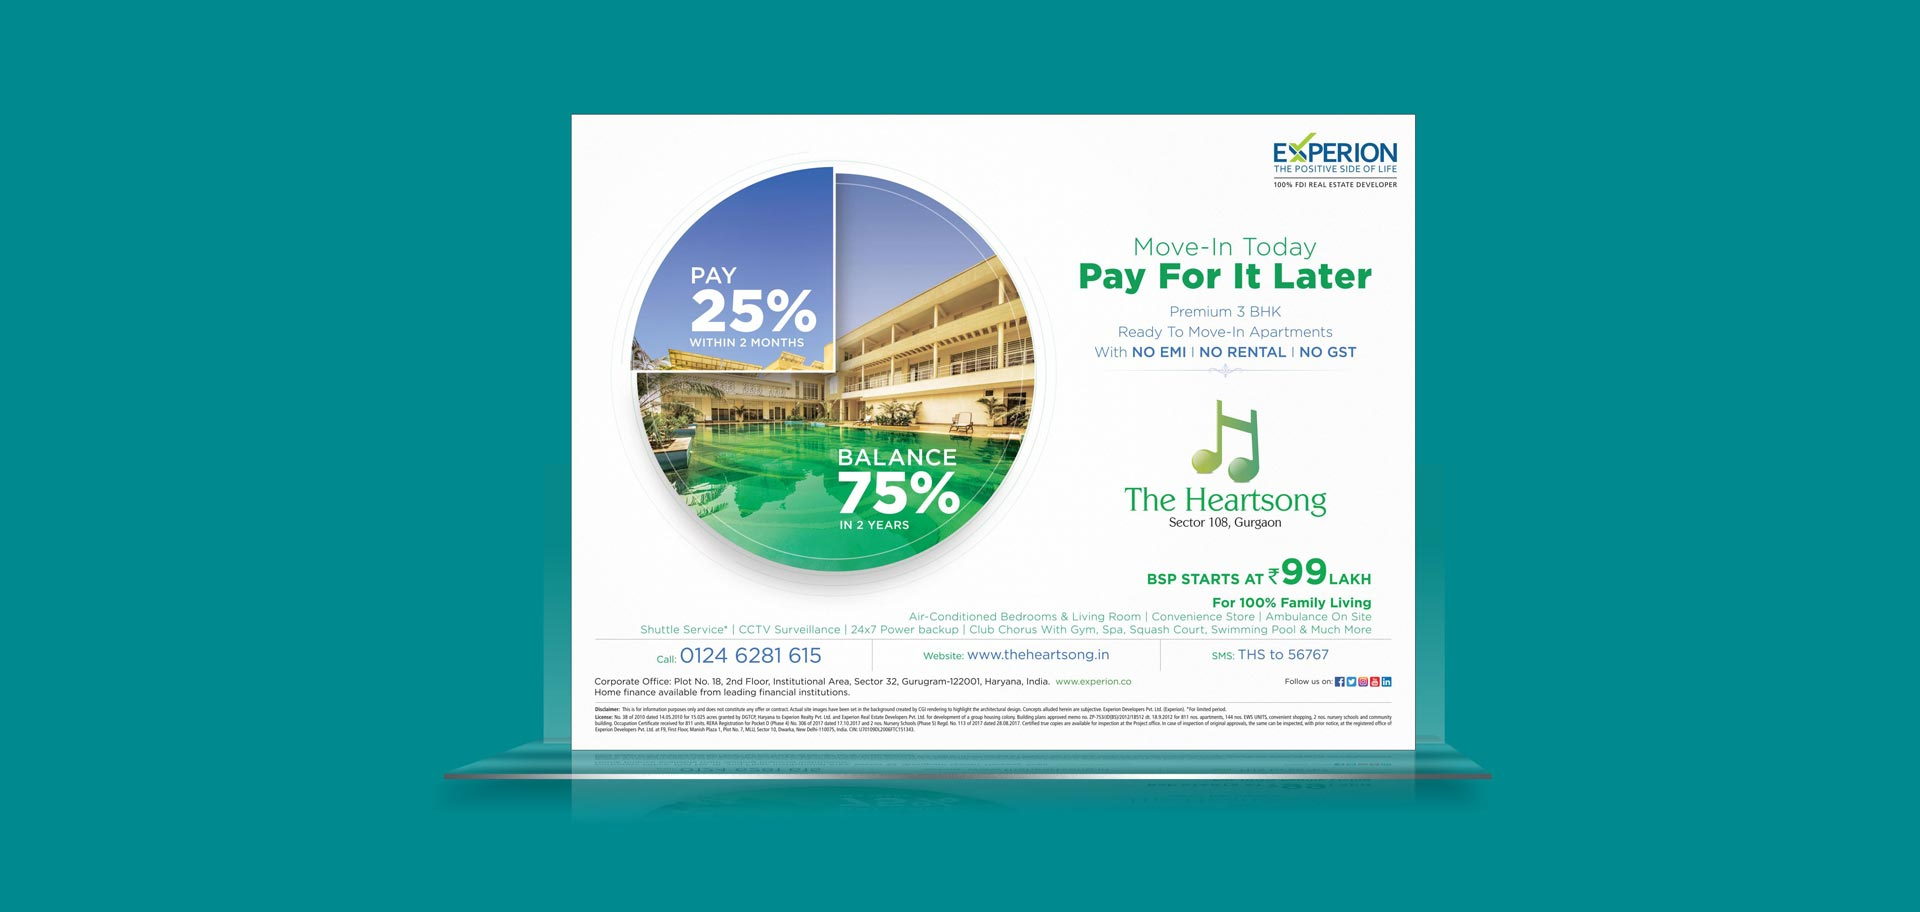 experion-advertisement-3